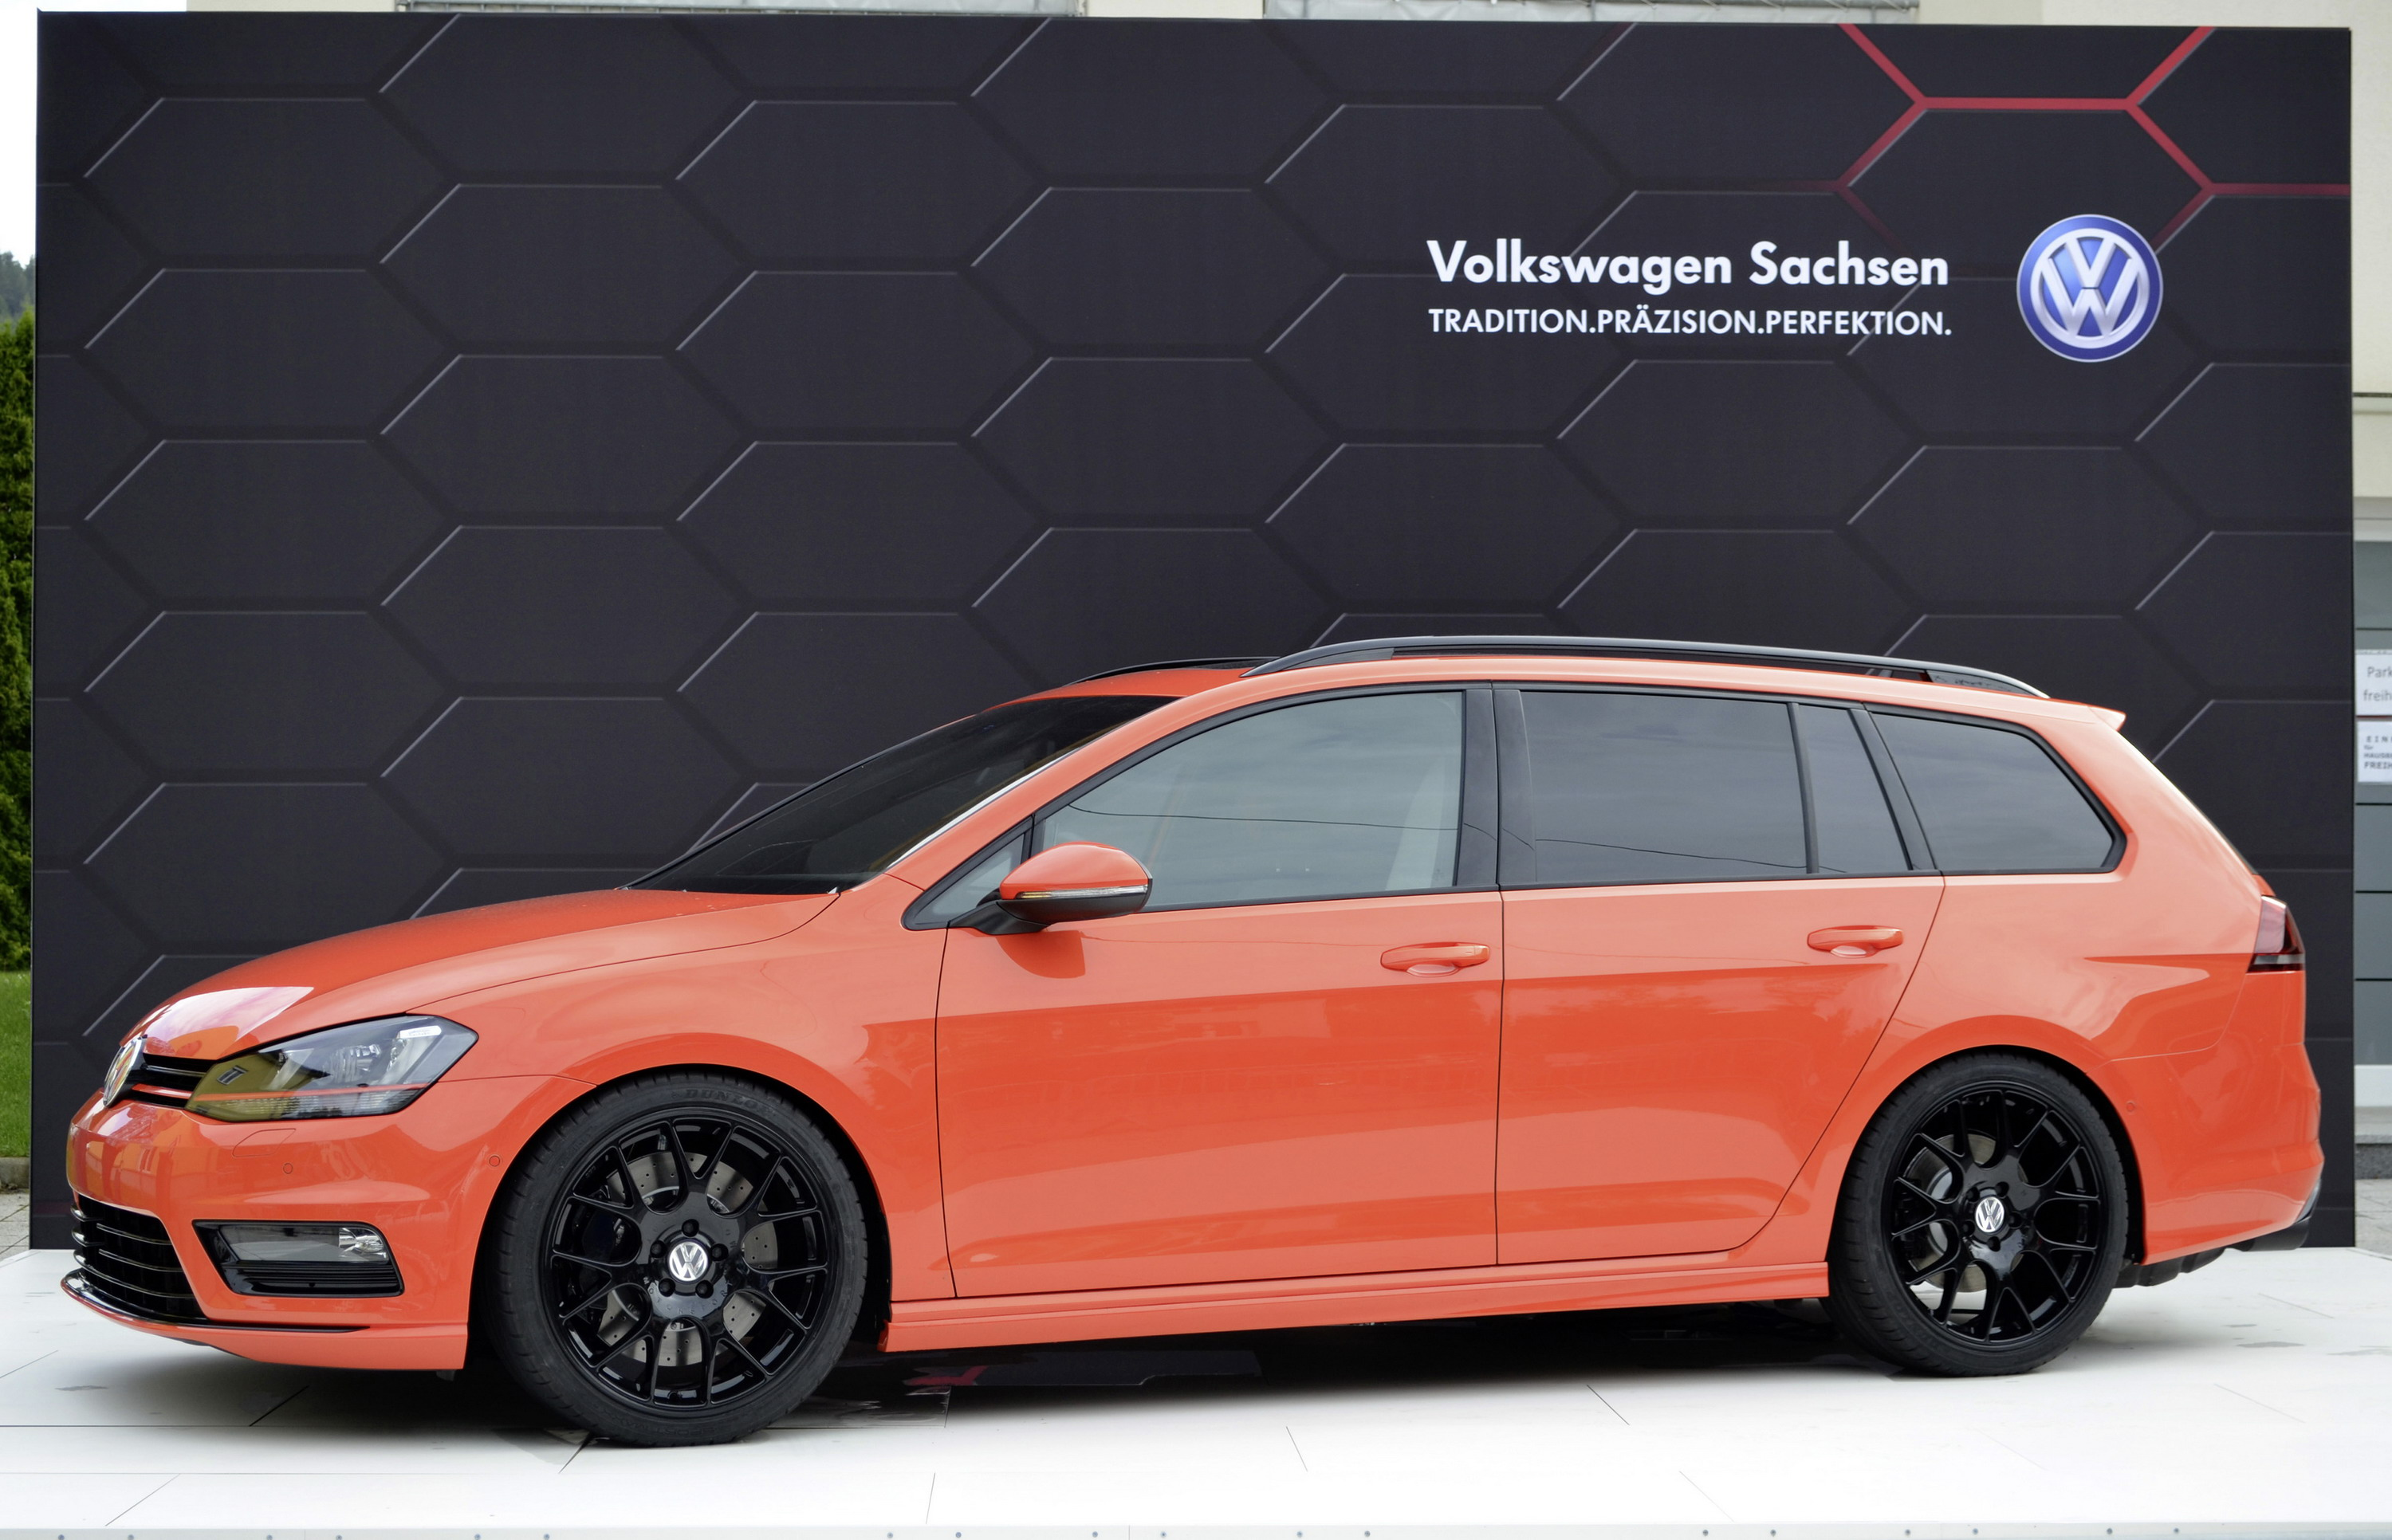 2014 volkswagen golf variant youngster 5000 review gallery top speed. Black Bedroom Furniture Sets. Home Design Ideas